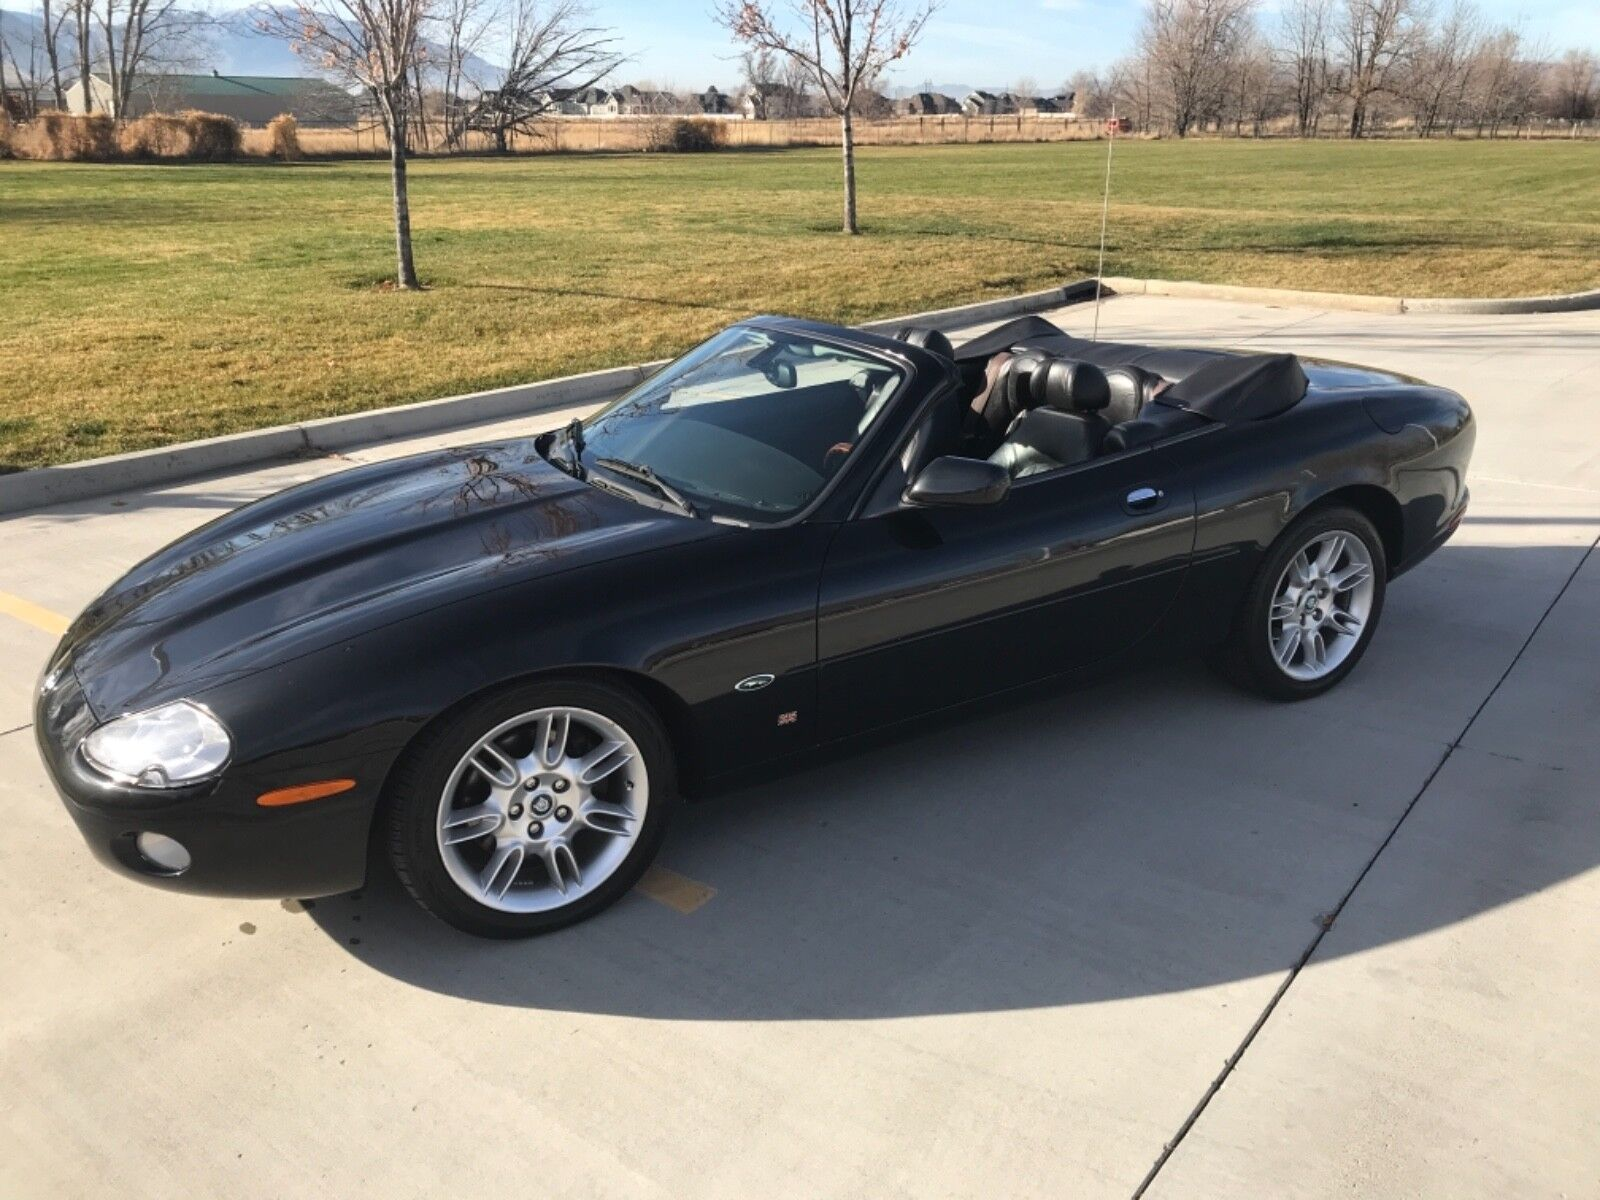 2001 Jaguar XK8 Convertible 2001 Jaguar XK8, LOW miles, Rare, triple Black Convertible. Excellent!